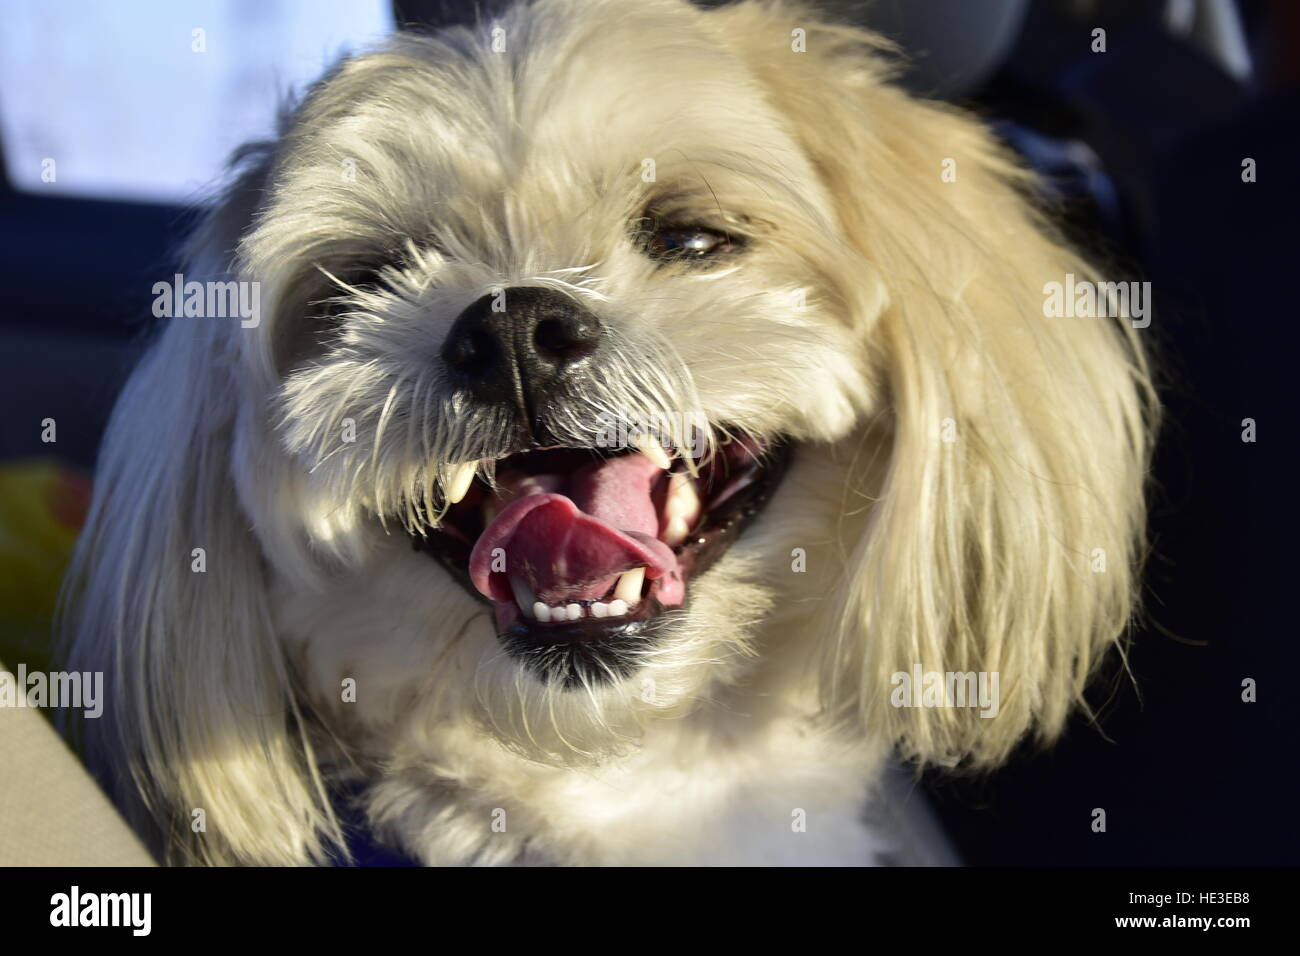 white hairy dog maltese smiling happy puppy pet housepet - Stock Image